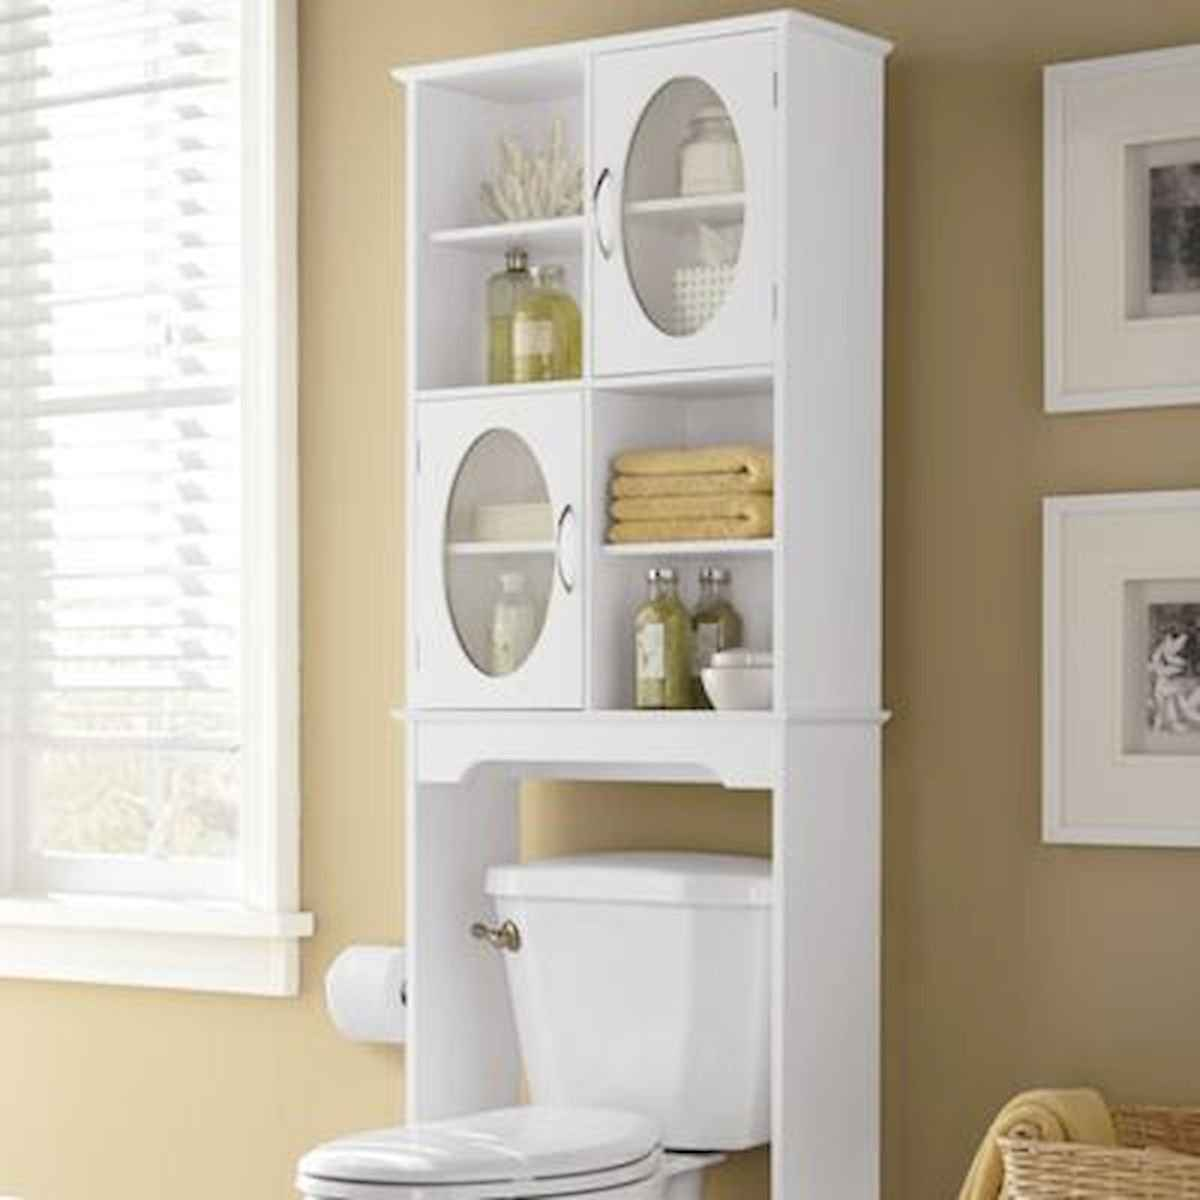 66 Fantastic Bathroom Storage Decor Ideas And Remodel for size 1200 X 1200